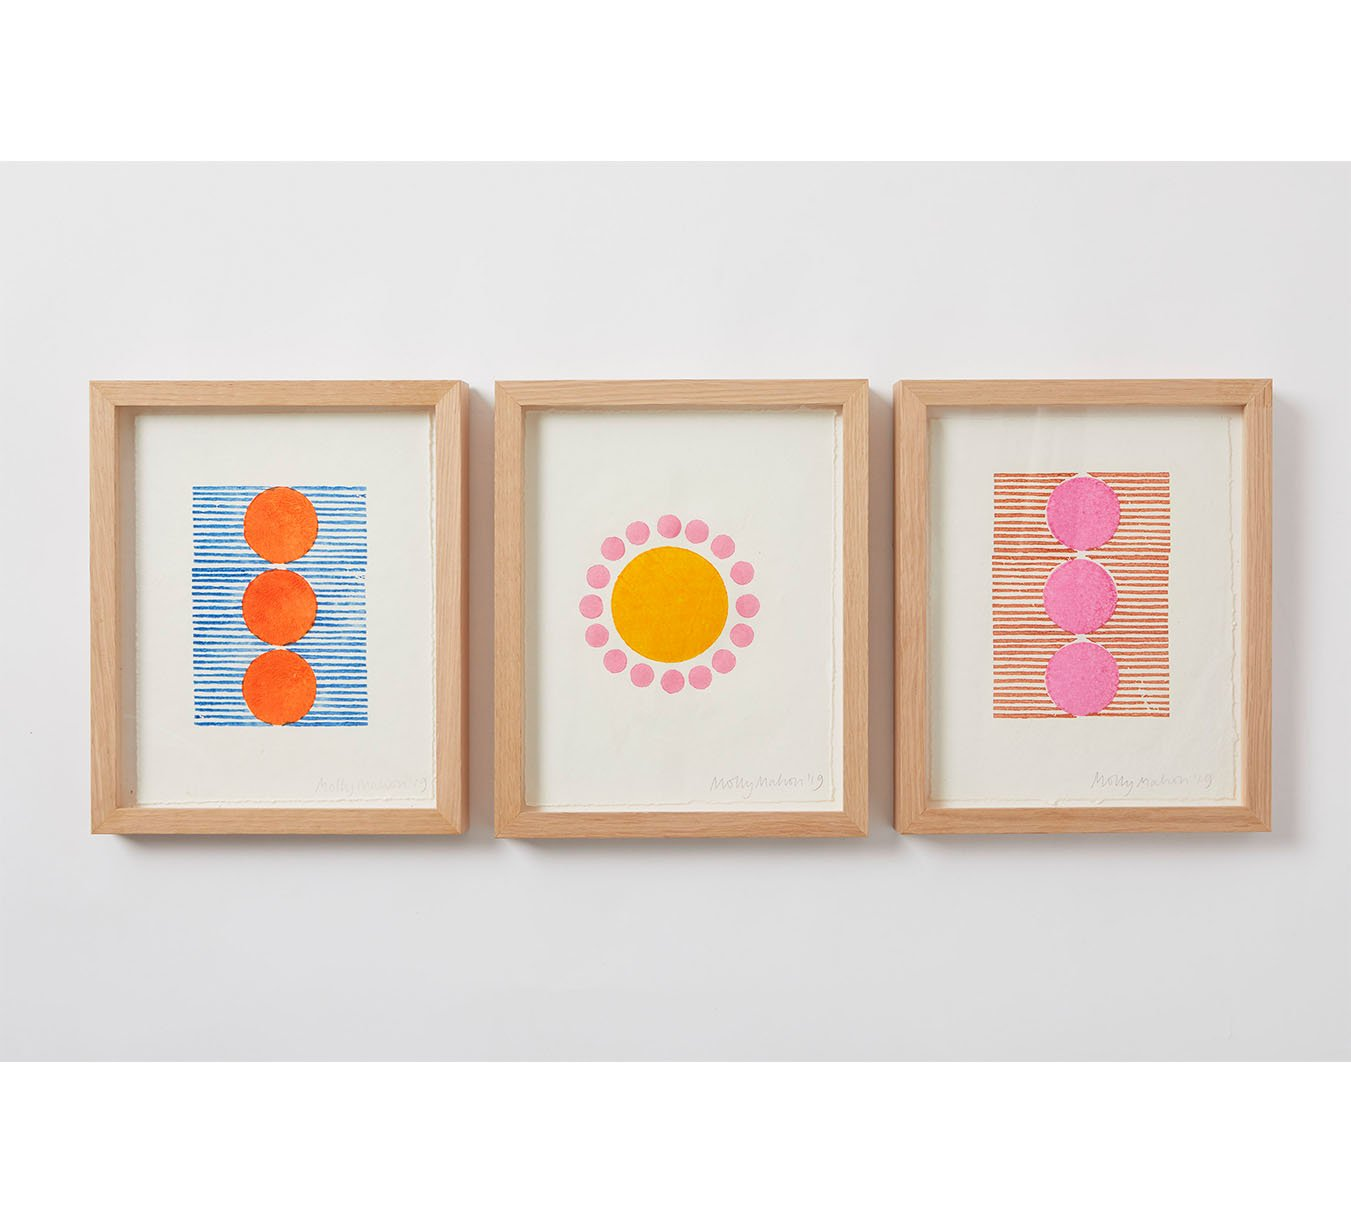 Framed - Cotton Paper Print - Trio 7